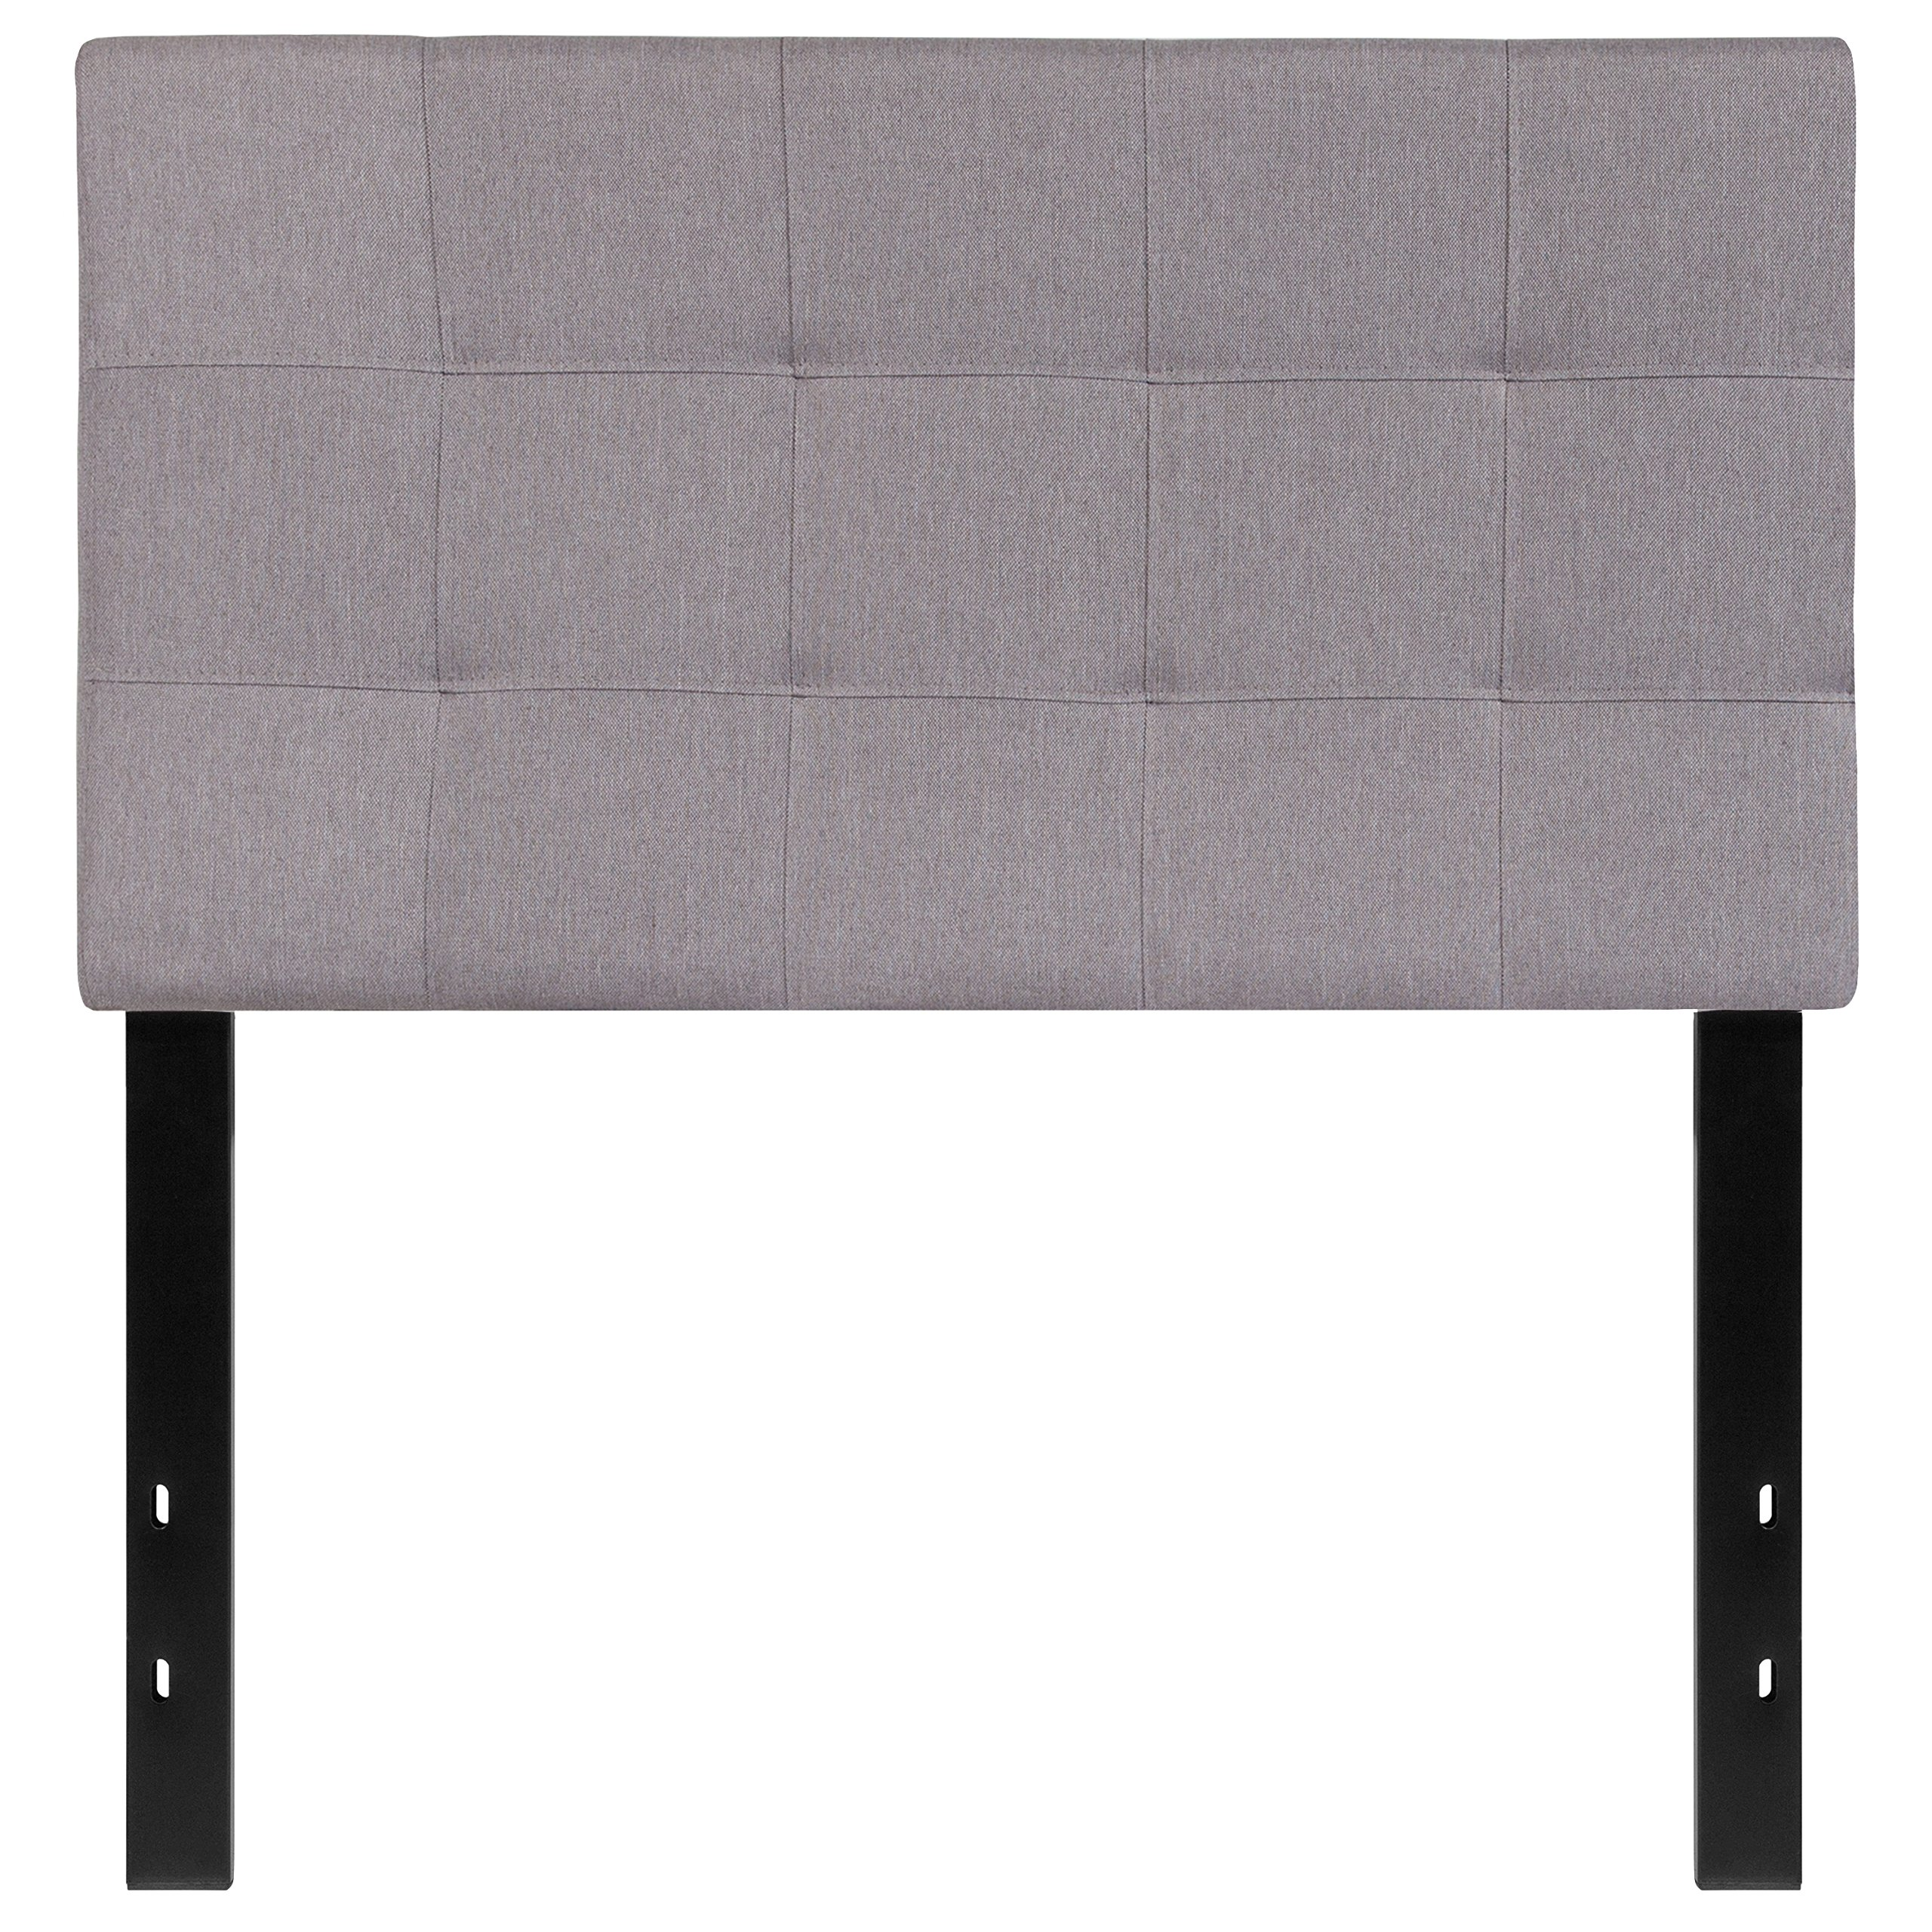 Flash Furniture Bedford Tufted Upholstered Twin Size Headboard in Light Gray Fabric by Flash Furniture